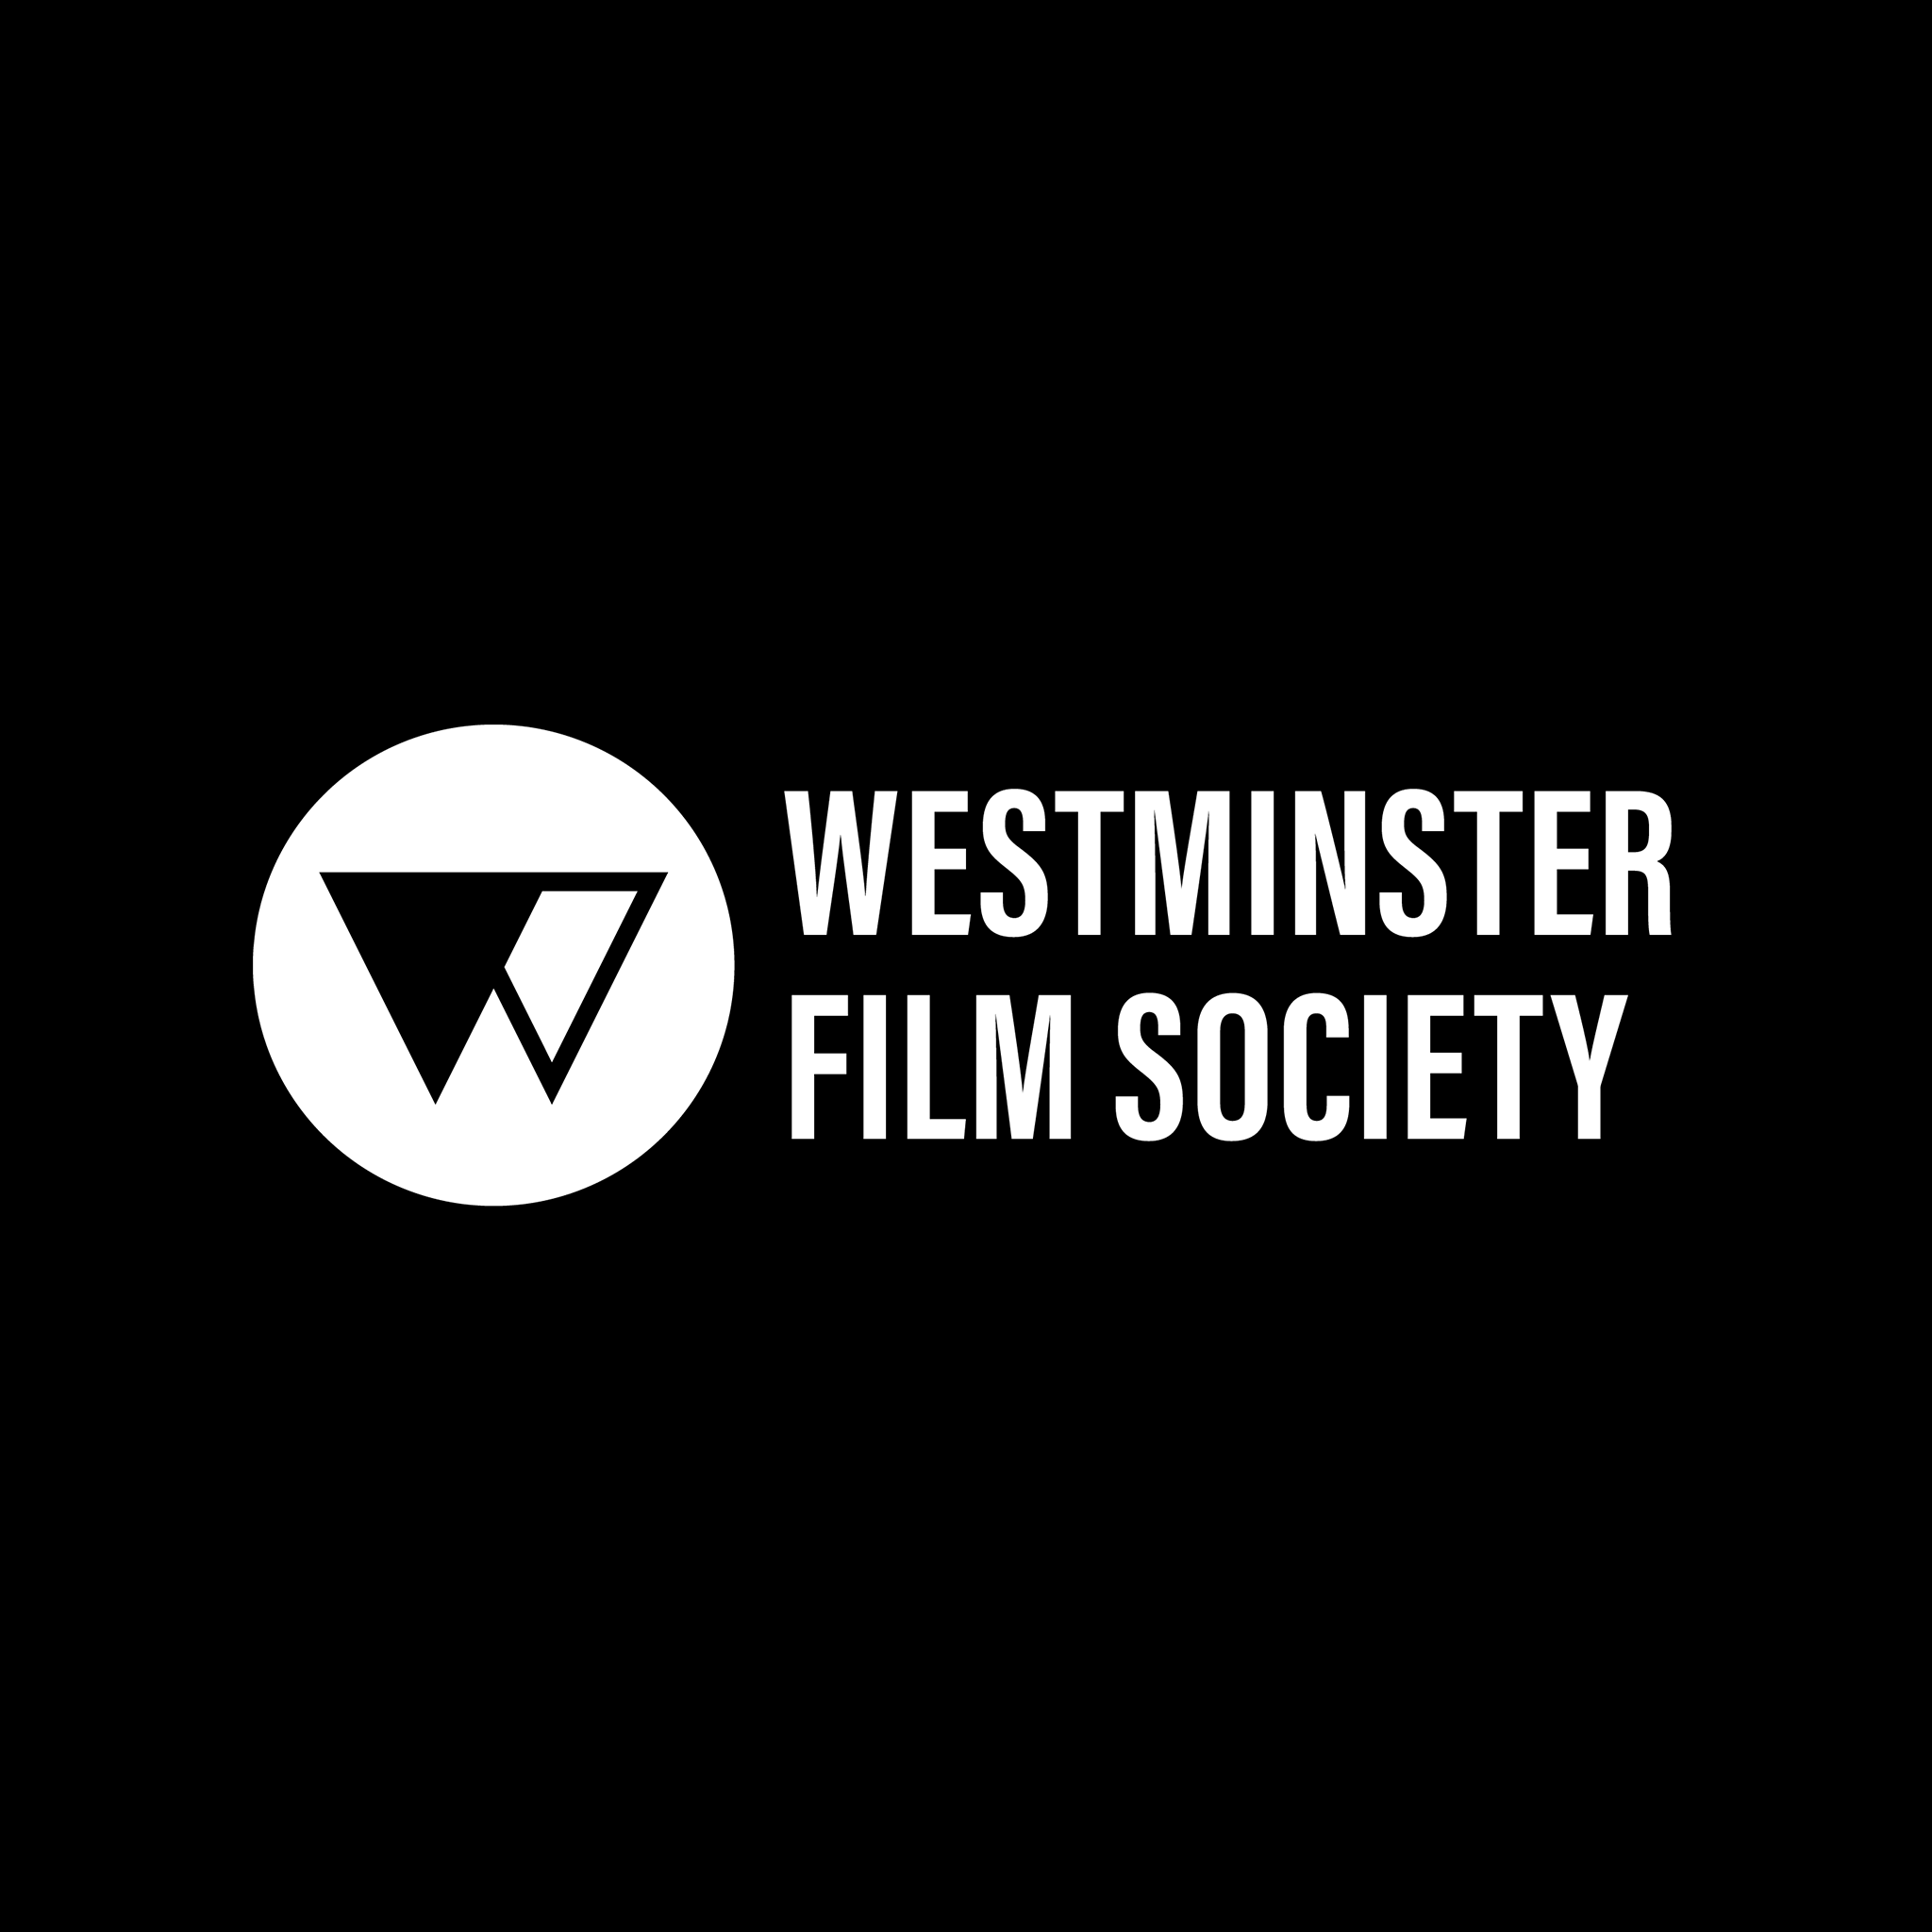 university of Westminster film society logo